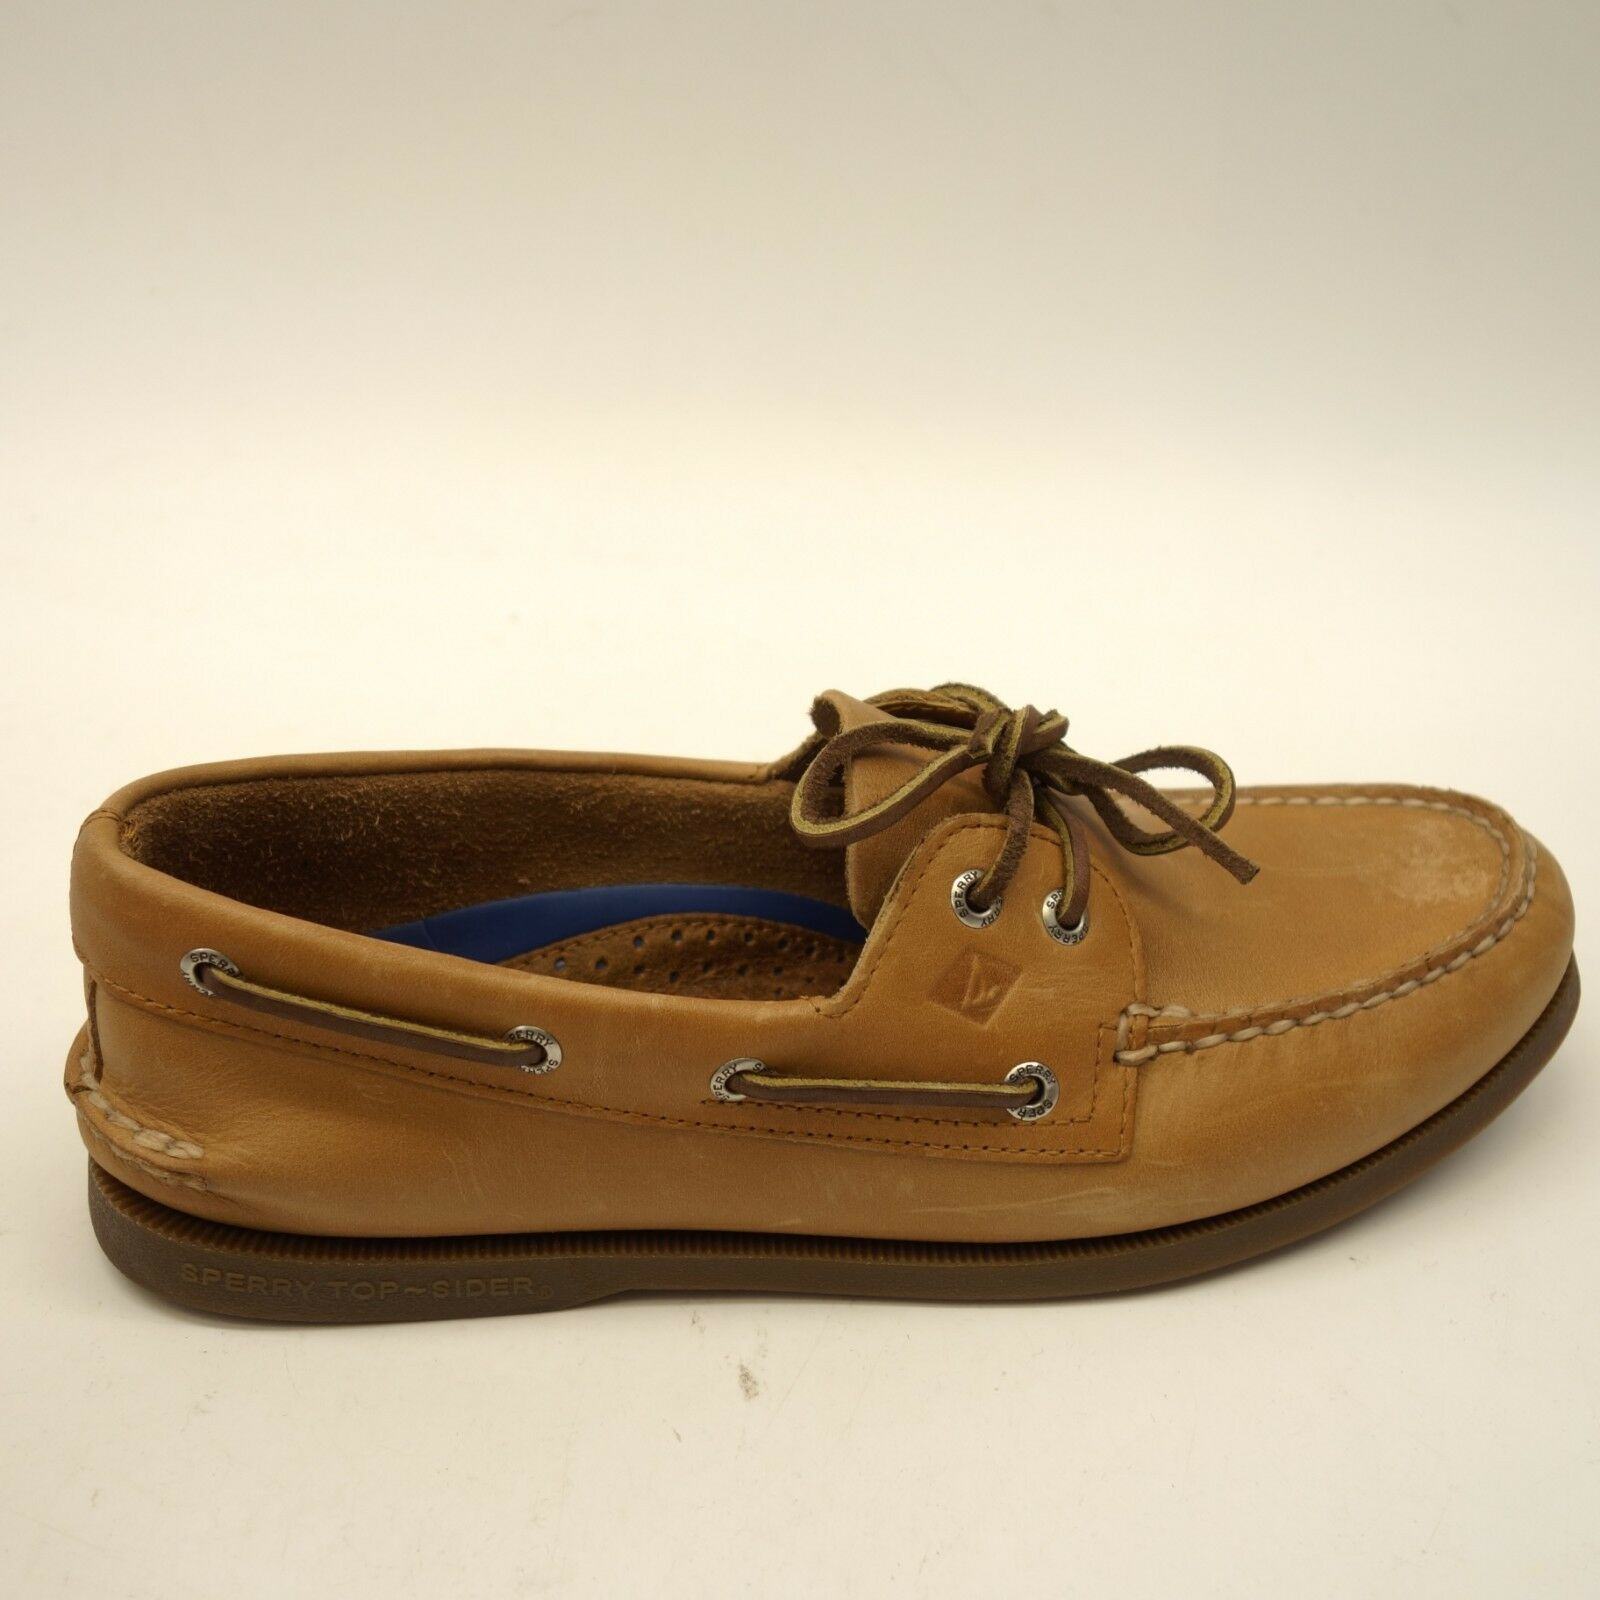 Sperry Mens Authentic Original Sahara 2 Eye Leather Boat shoes Sz US 9.5